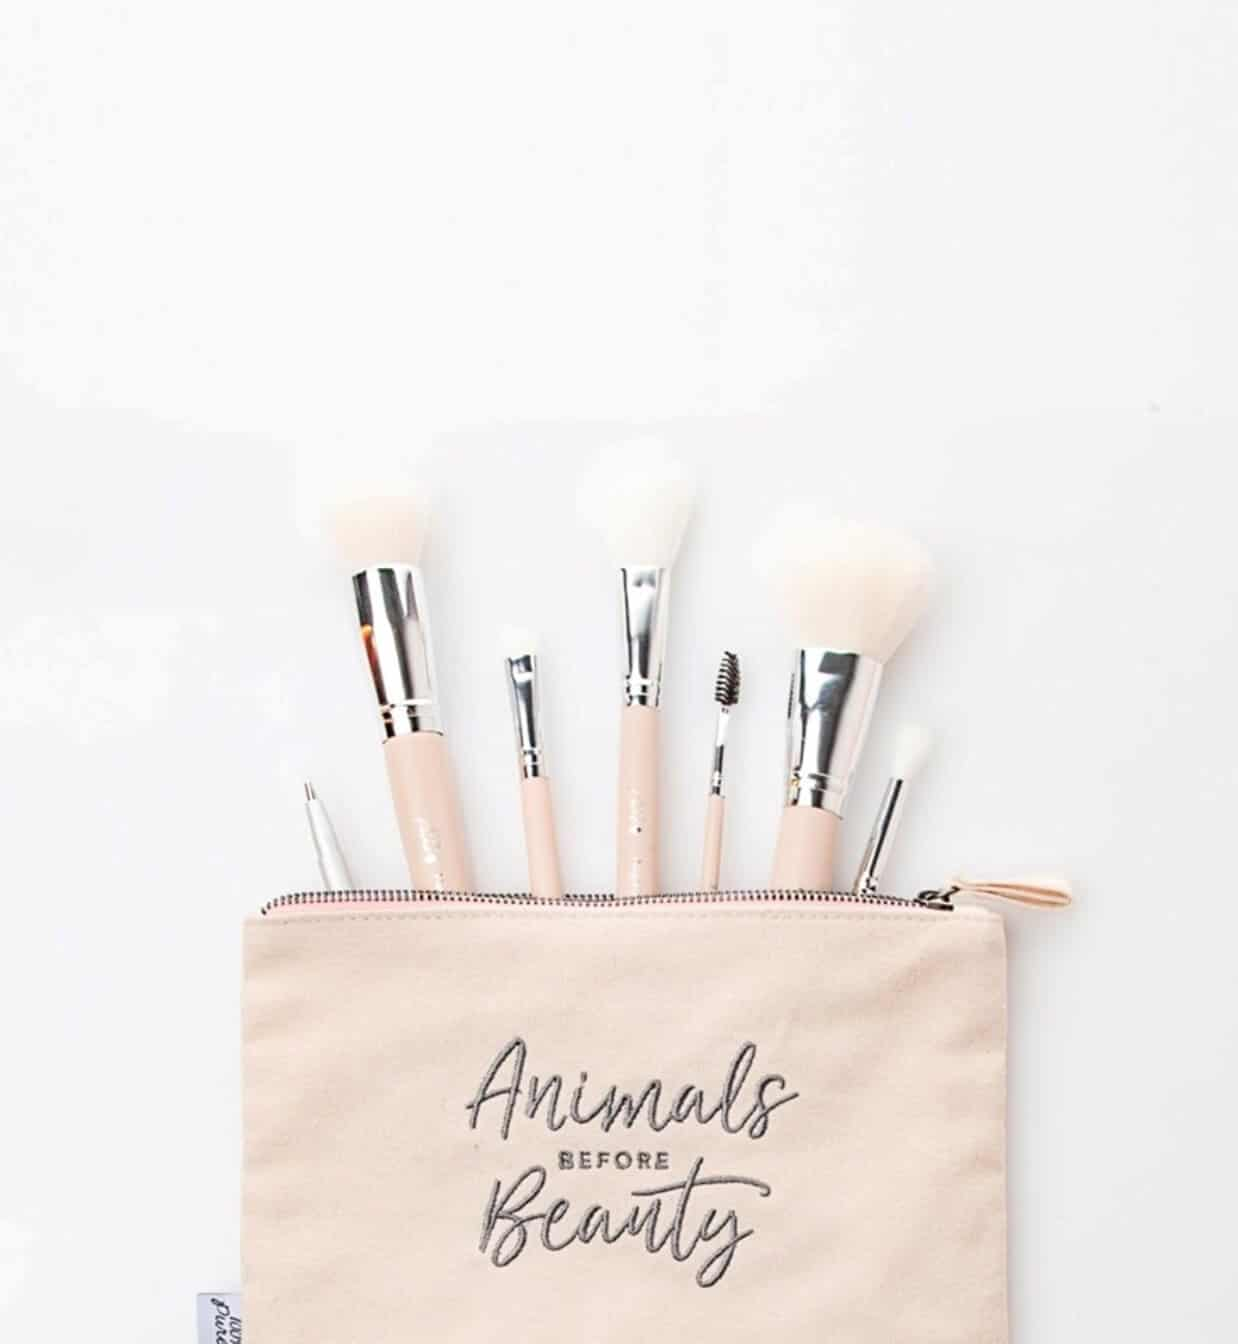 Vegan Makeup Brush Brands For A Flawlessly Fur Free Face Image by 100% Pure #veganmakeup #makeupbrush